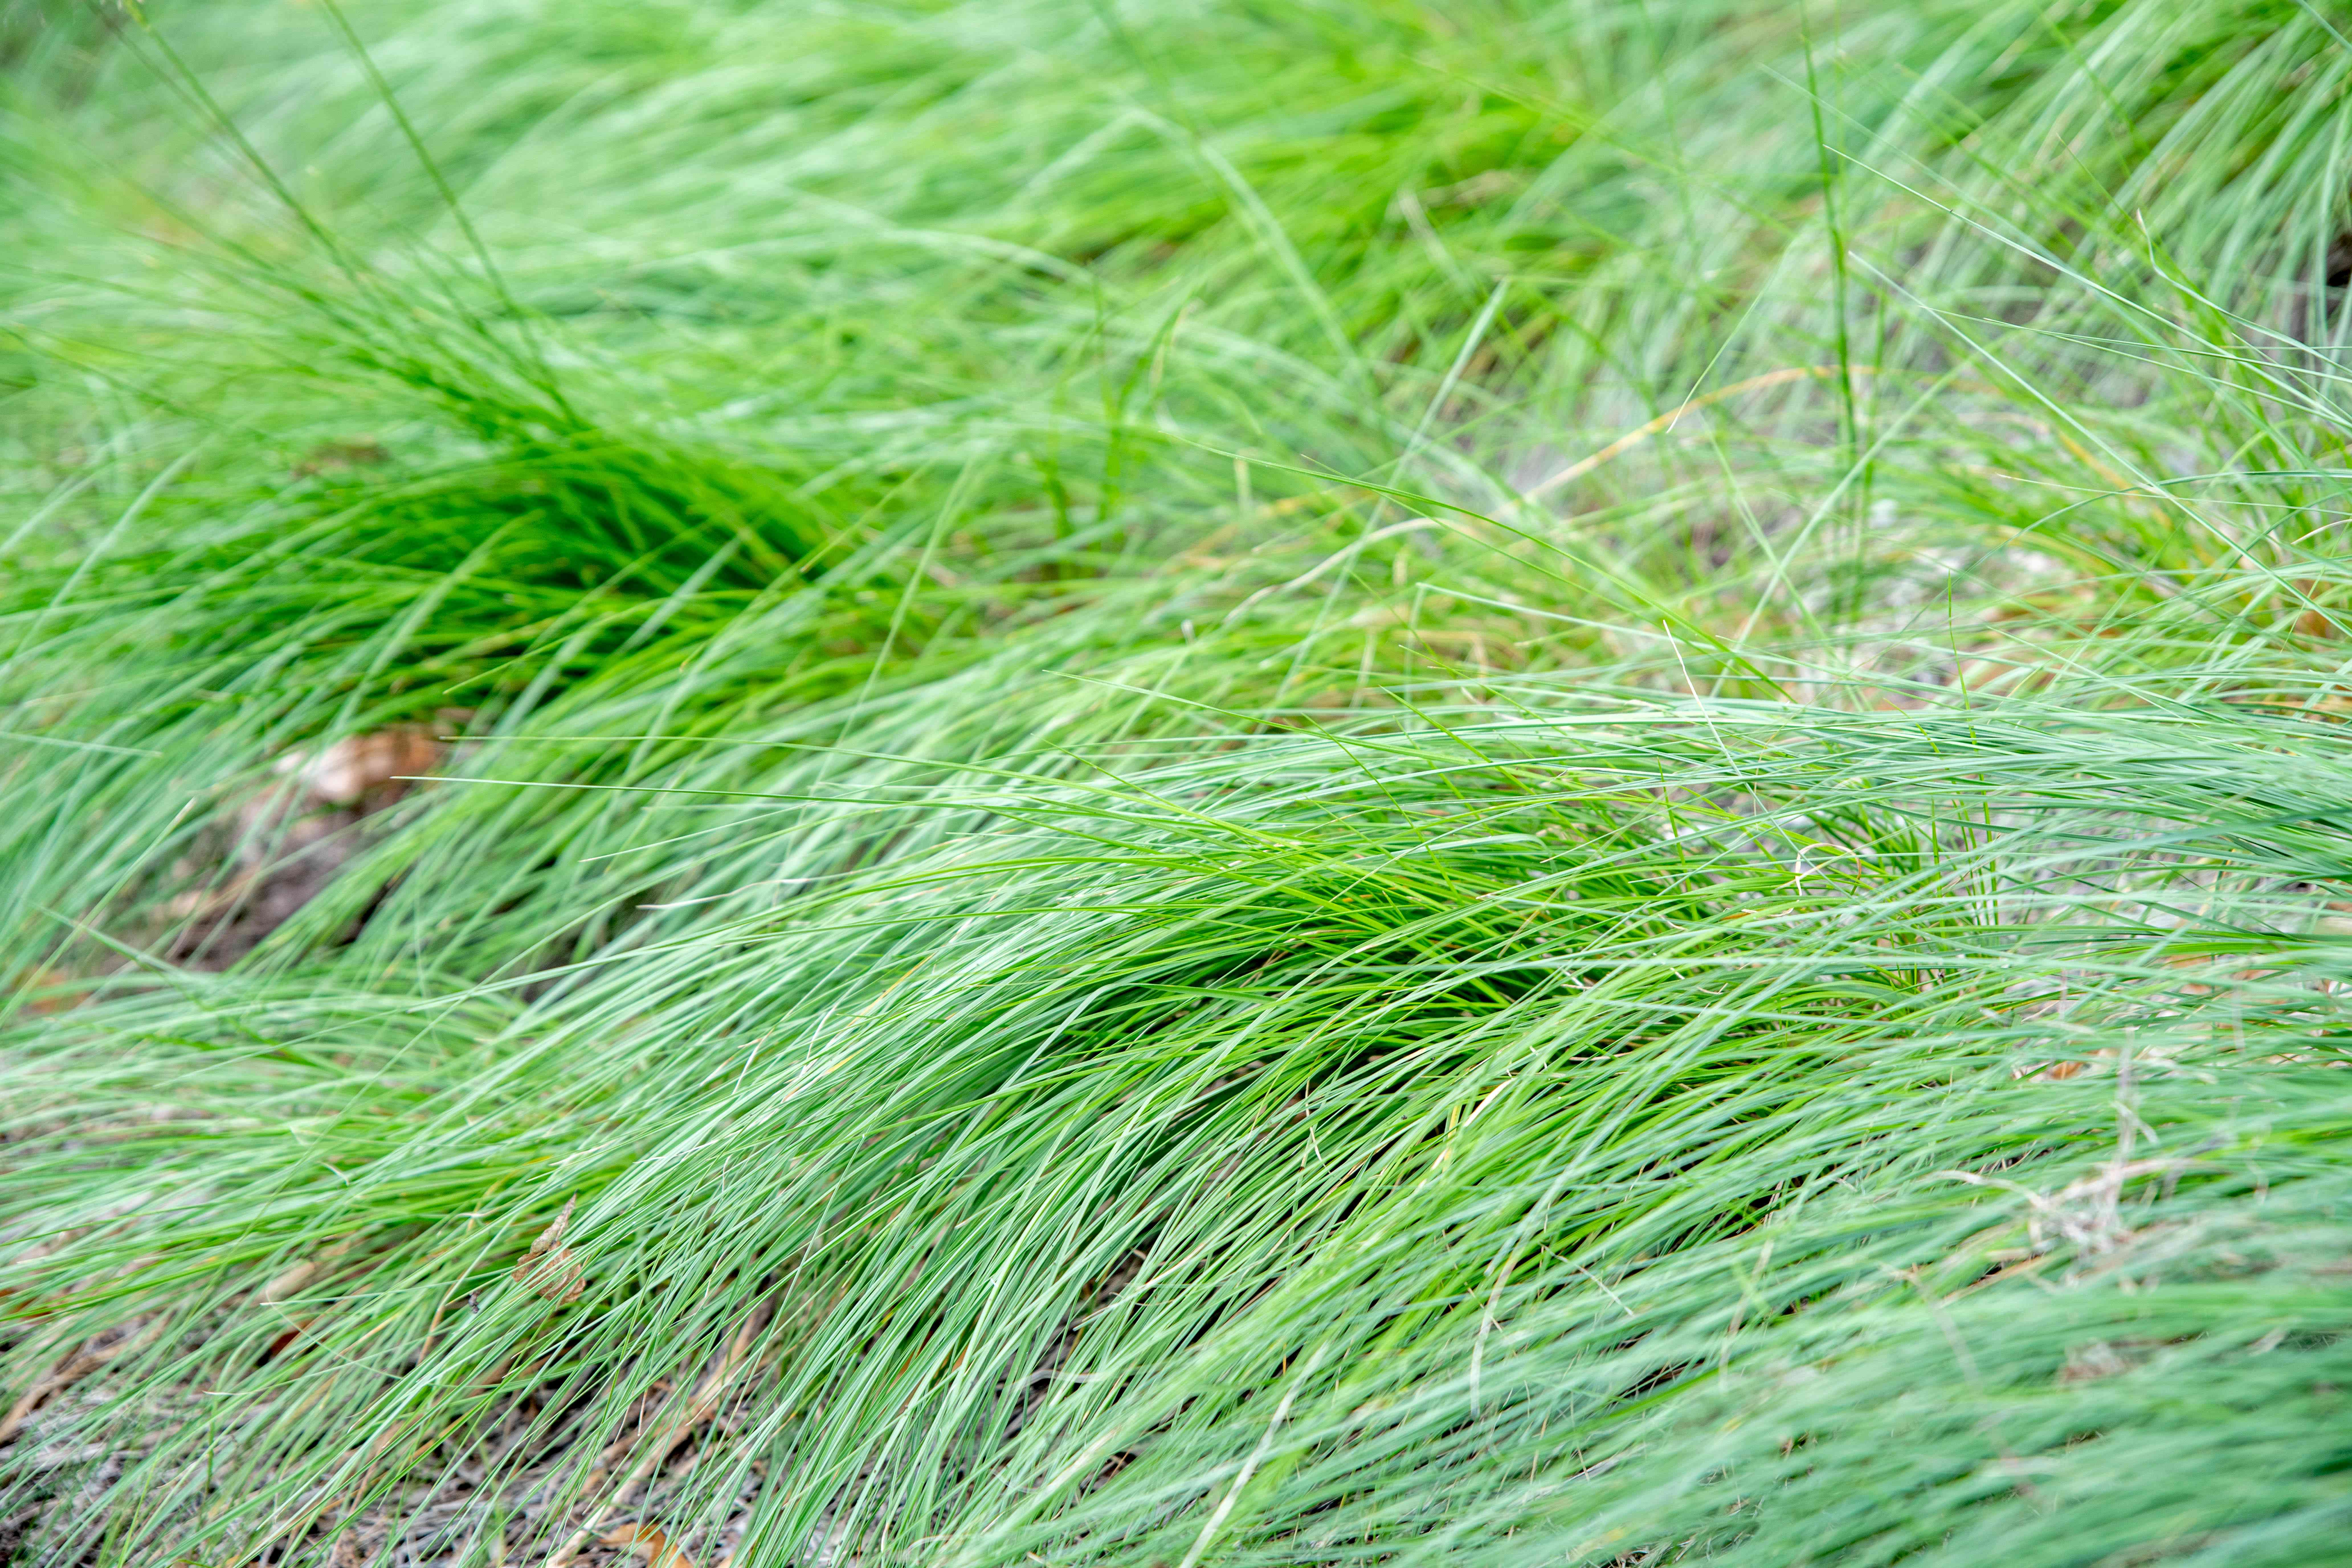 Praire dropseed grass with thin glossy-green blades in dense tufts arching to ground